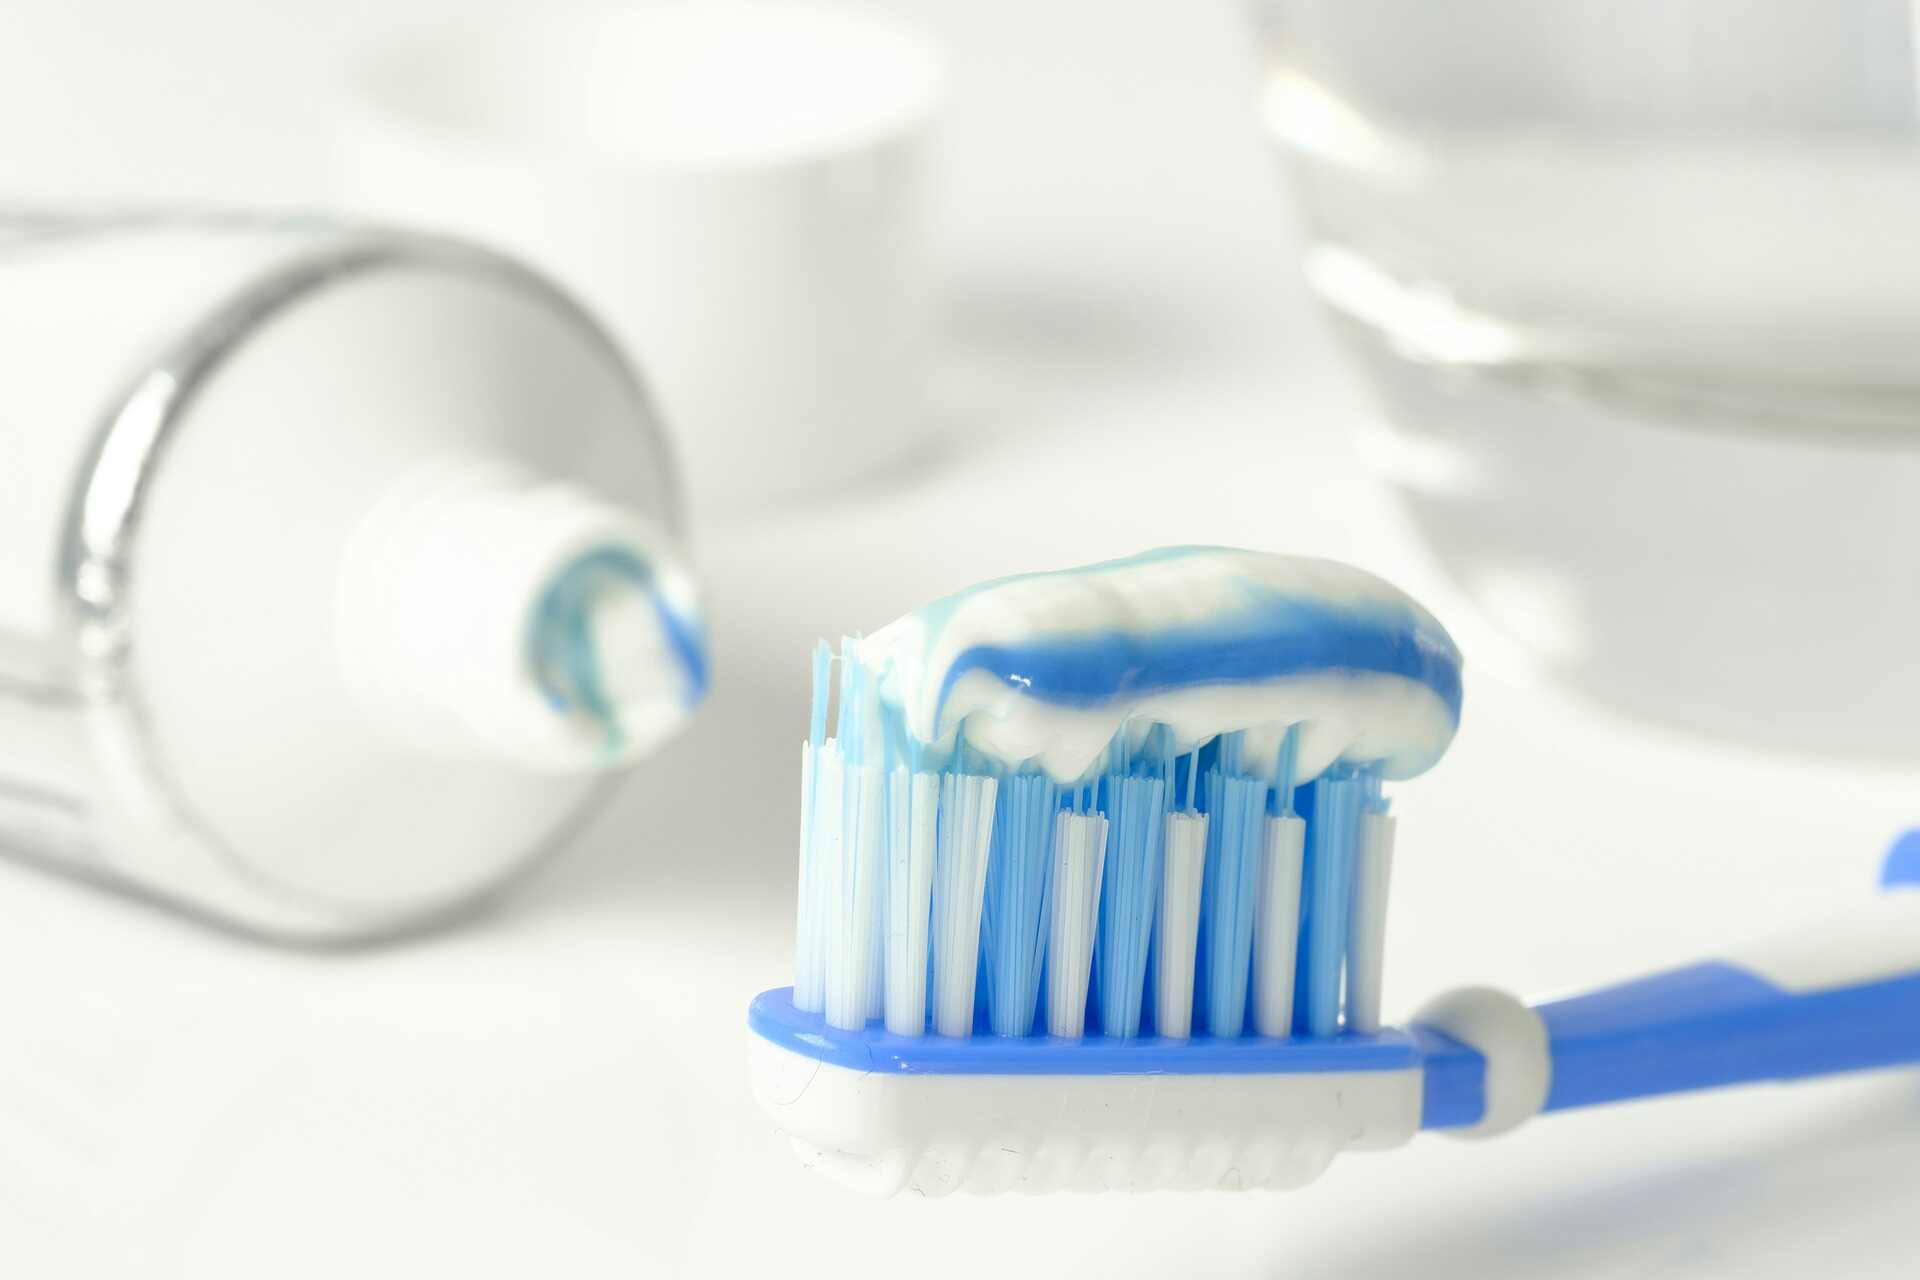 Is Fluoride Bad for Your Health? Real Facts on Fluoride